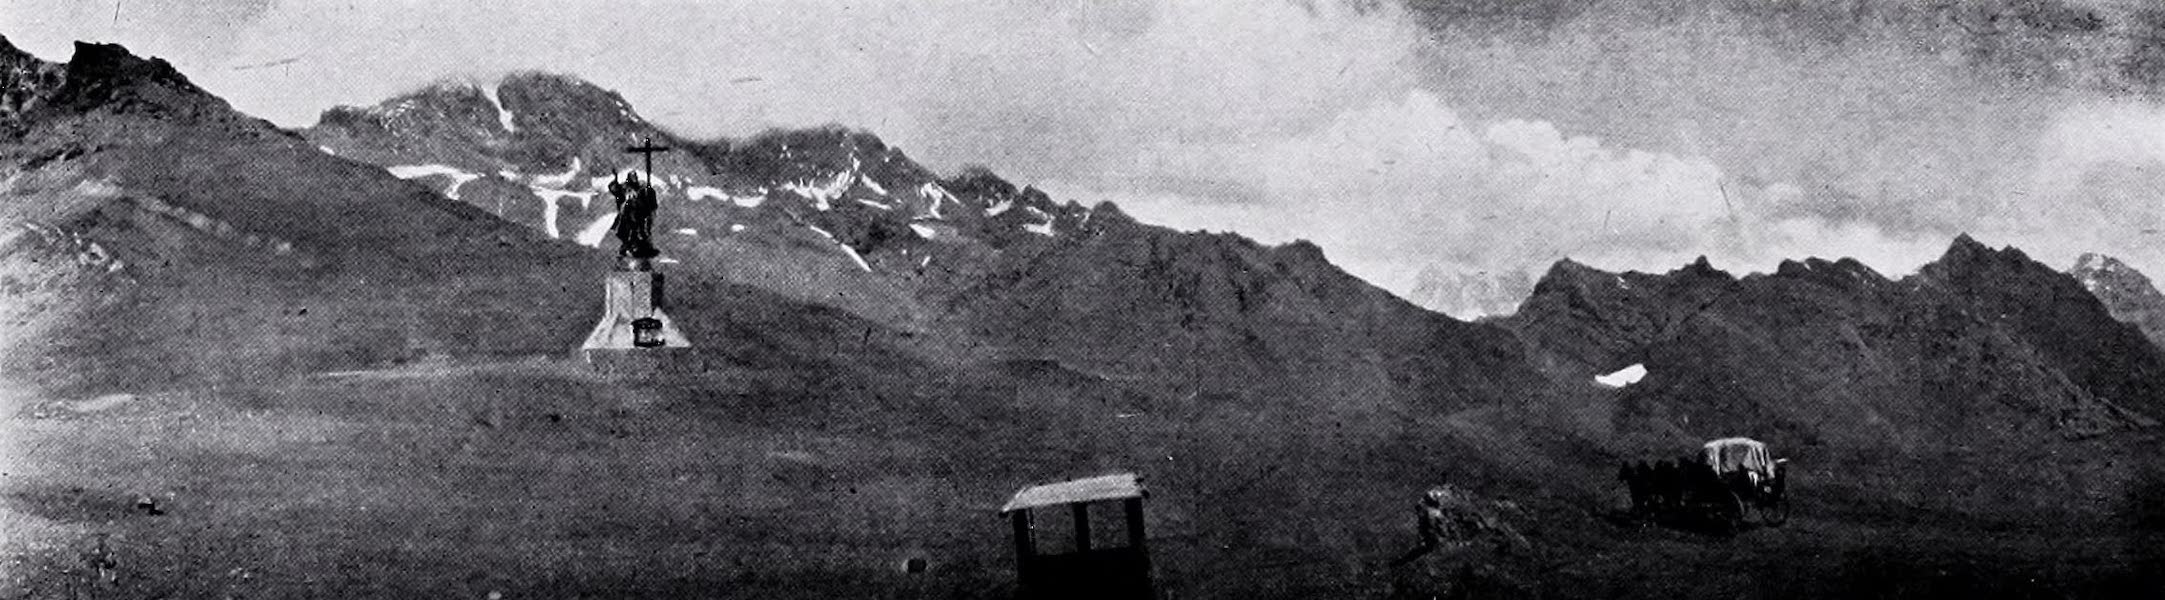 Argentina, Past and Present - Old Refuge Hut in the Andes (1914)